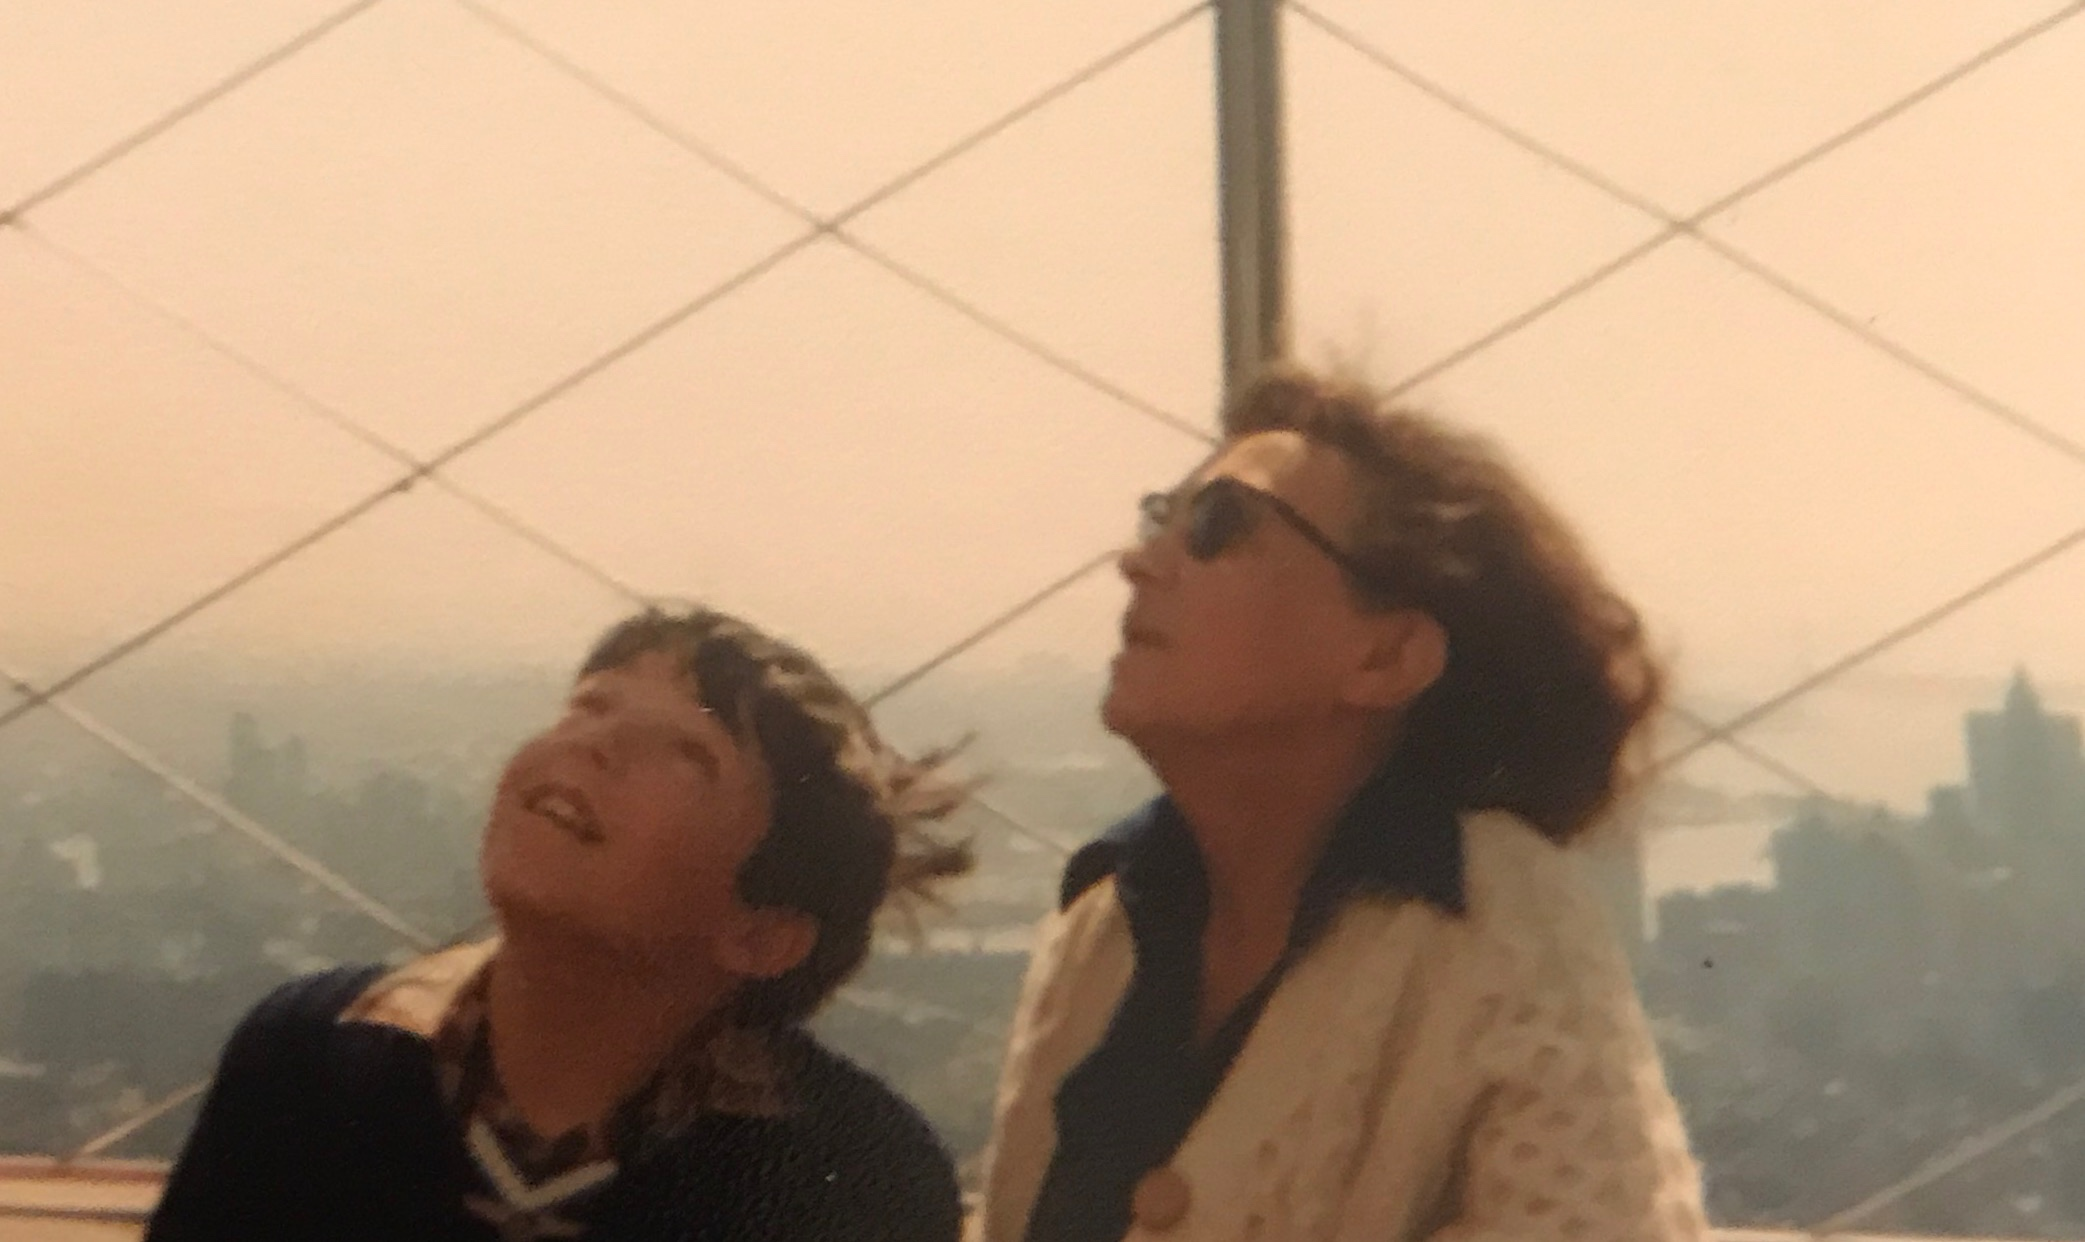 Gran and me, on the Observation Deck of the Empire State Building.